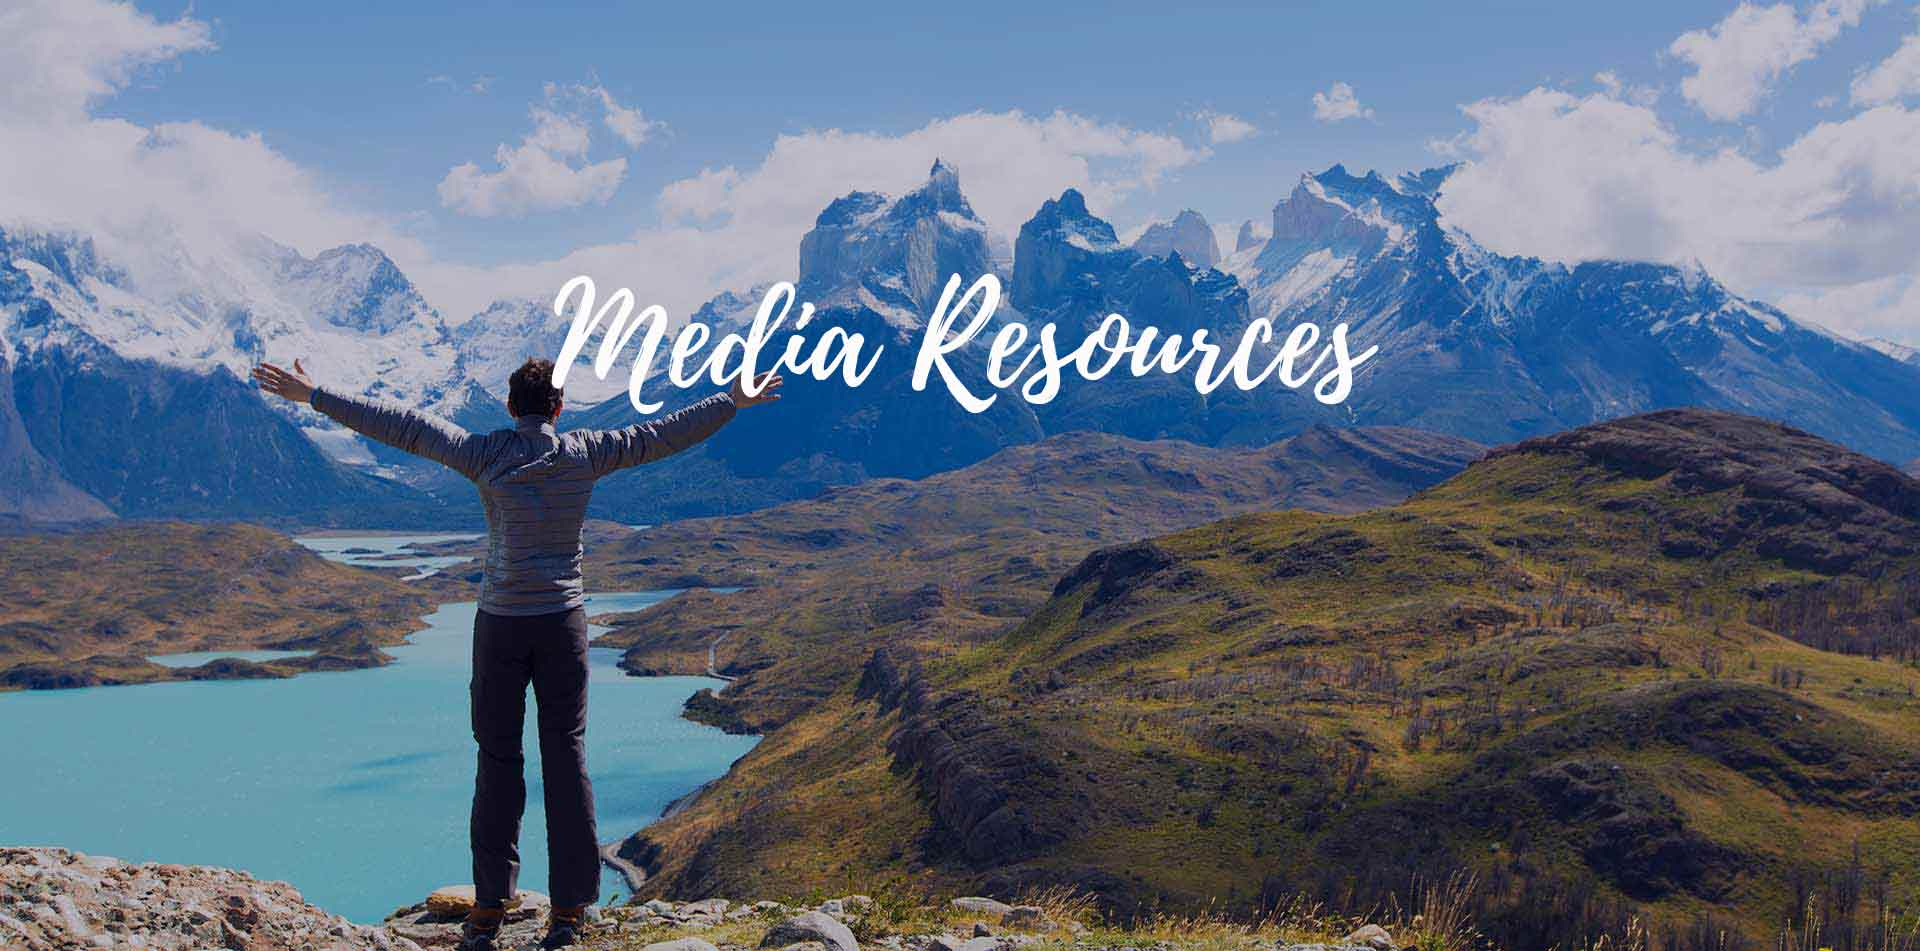 Chile Patagonia traveler at scenic Torres del Paine National Park media resources- luxury vacation destinations